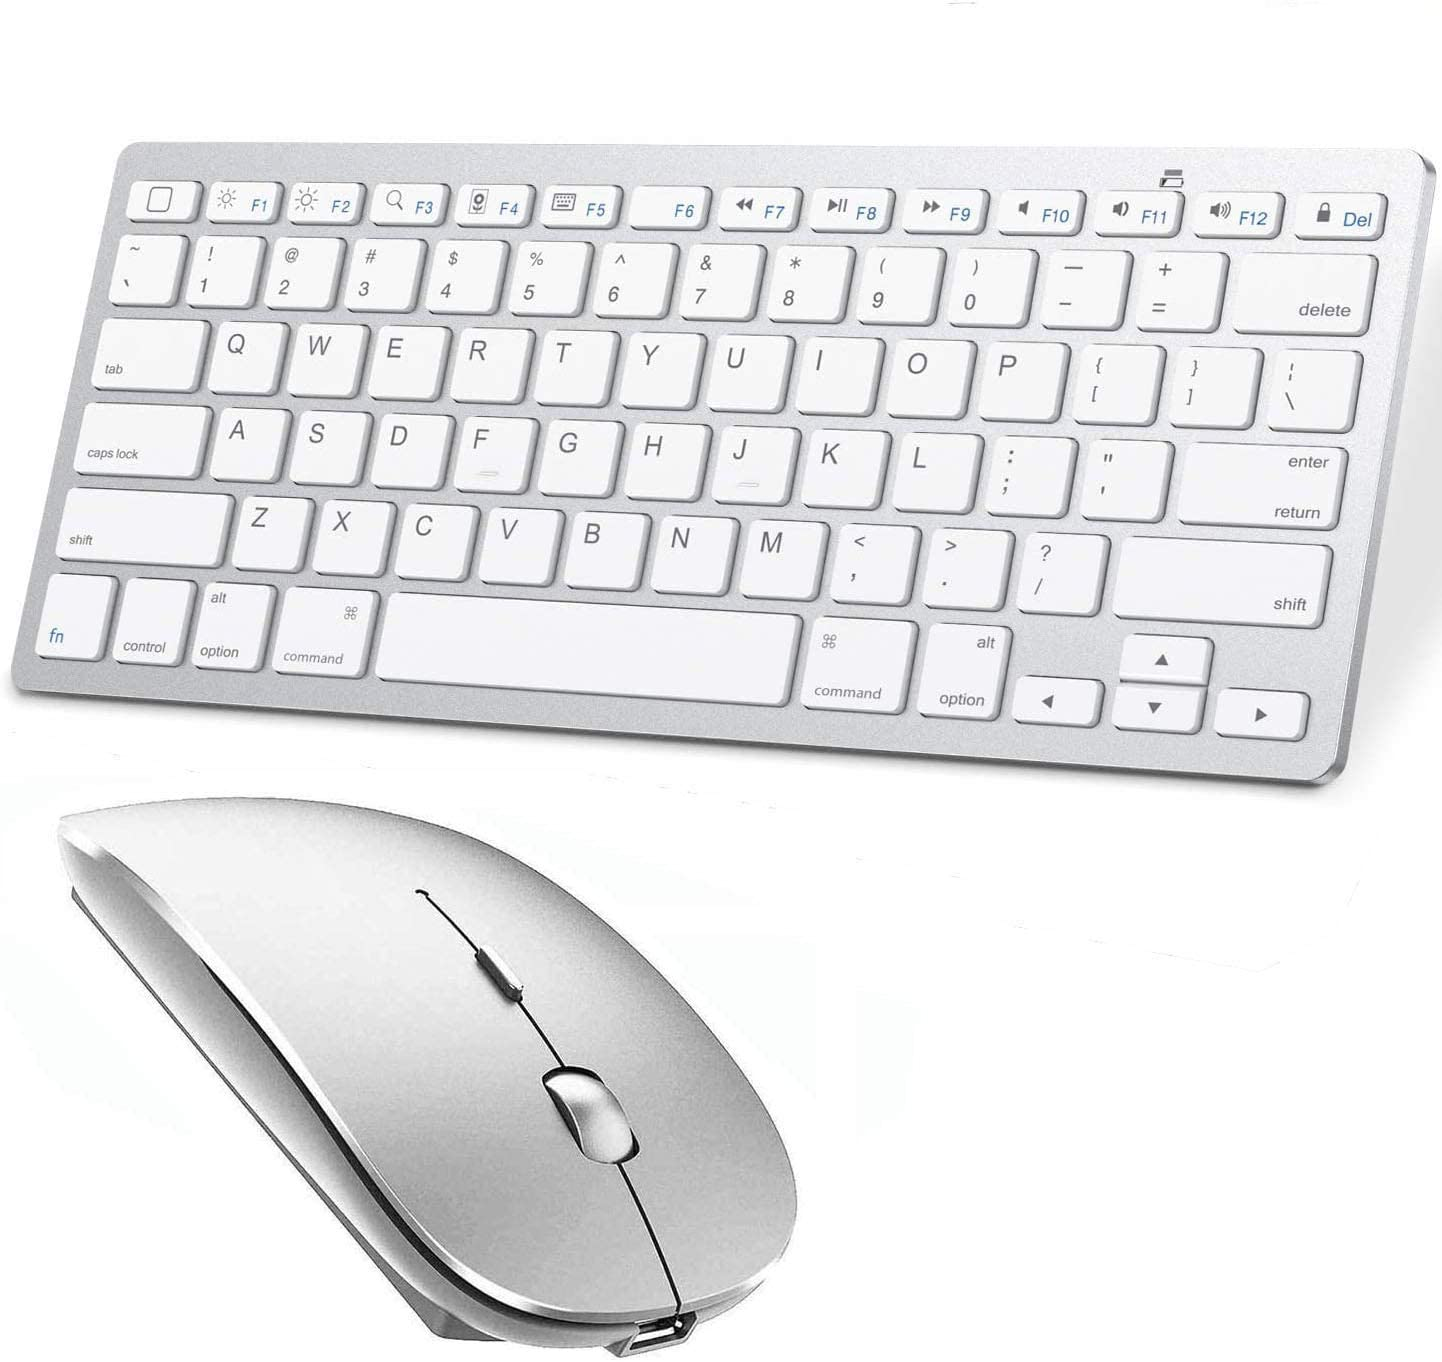 Bluetooth Keyboard and Mouse for iPad and iPhone (iPadOS 13 / iOS 13 and Above) Wireless Keyboard and Mouse for iPad/iPad Air/iPad Pro/iPad Mini, iPhone,Mac (Silver)